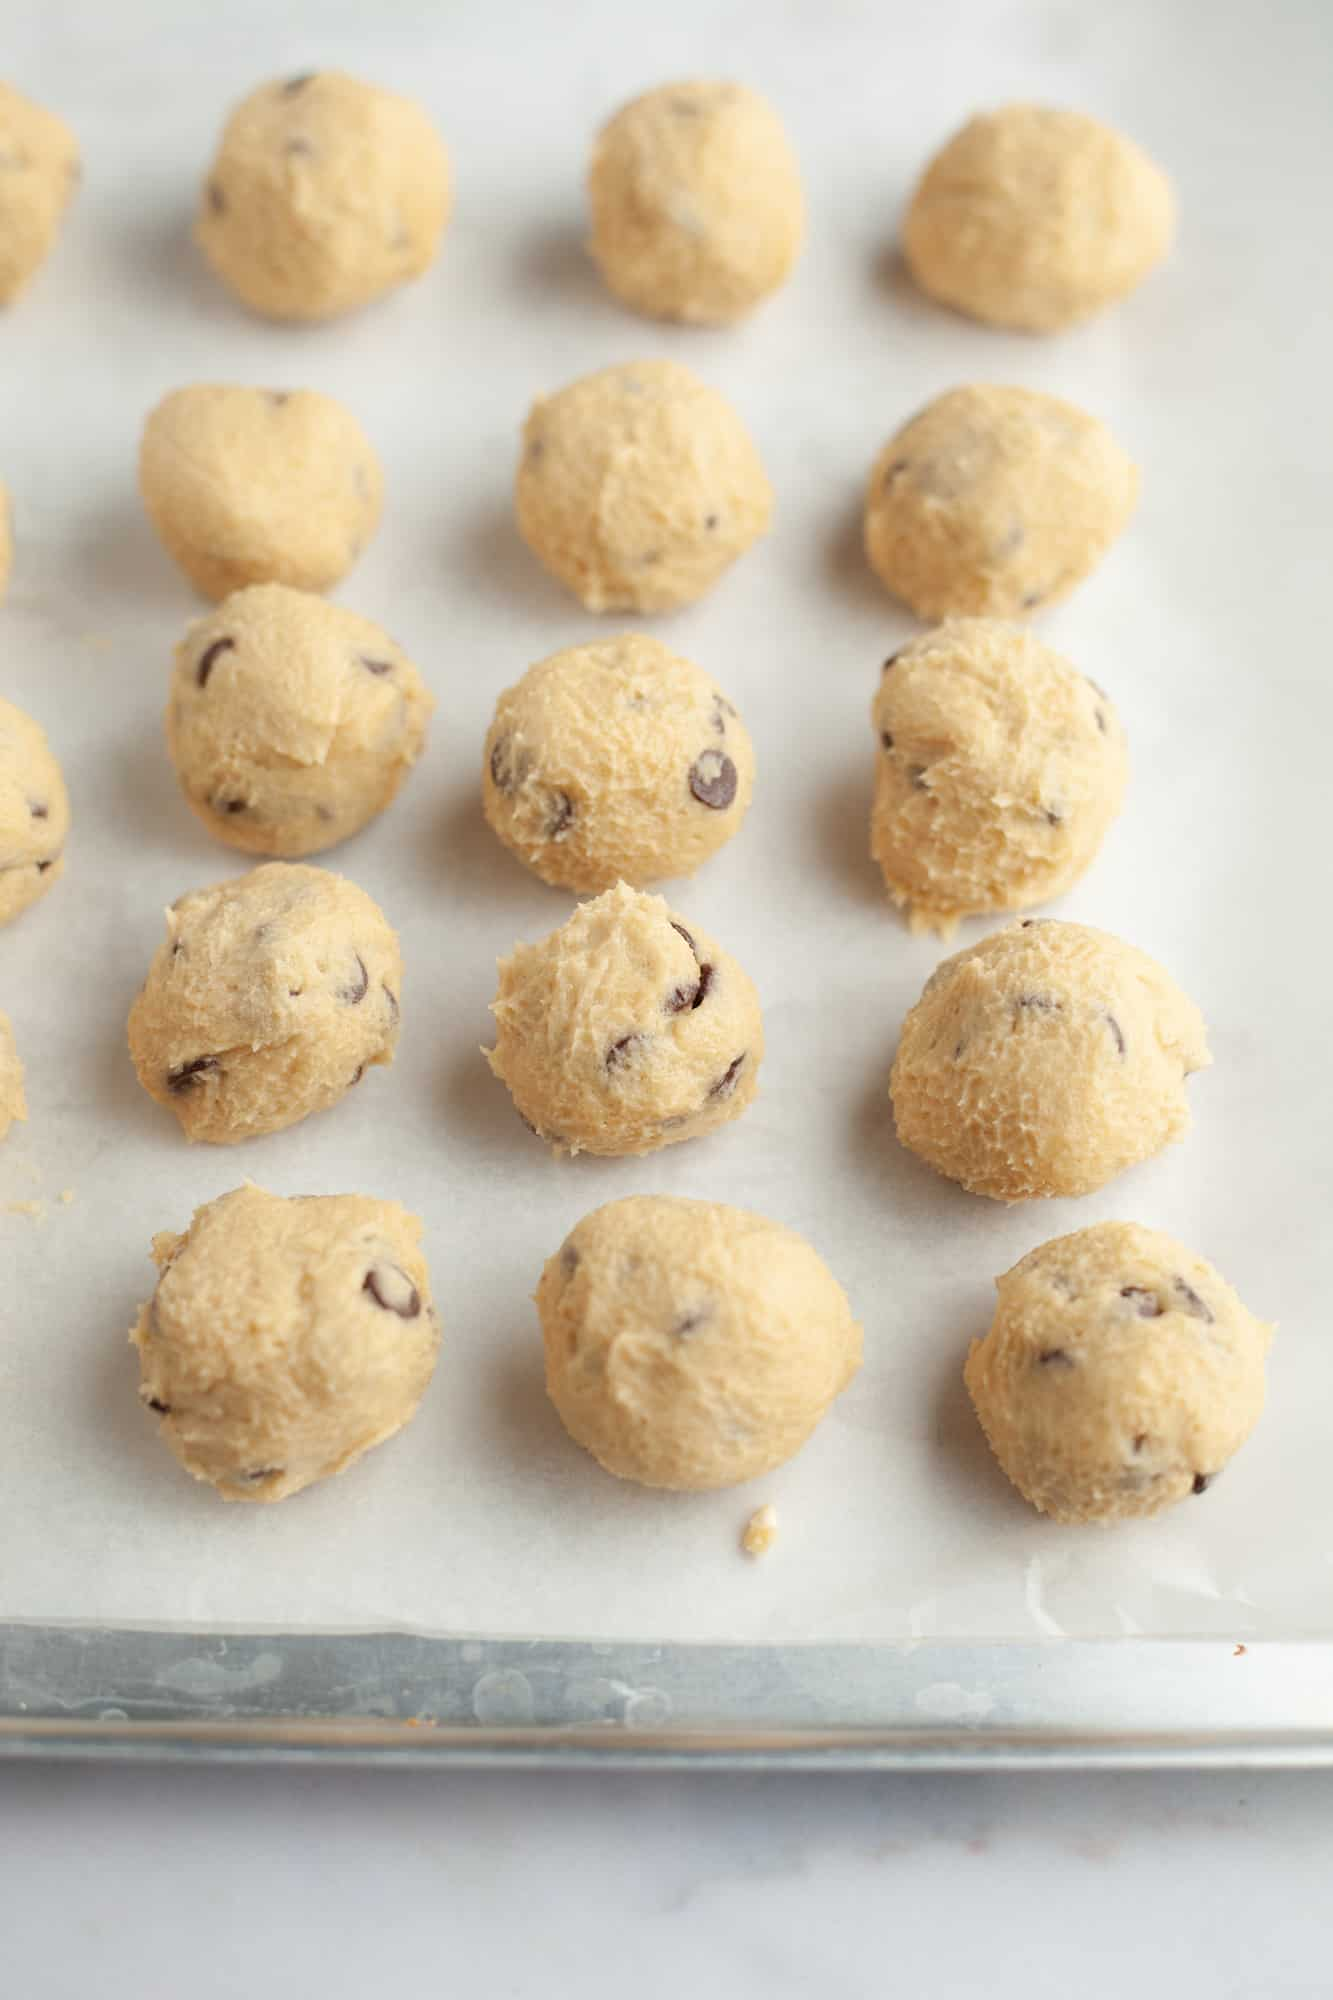 Cookie dough balls on parchment paper on a baking tray